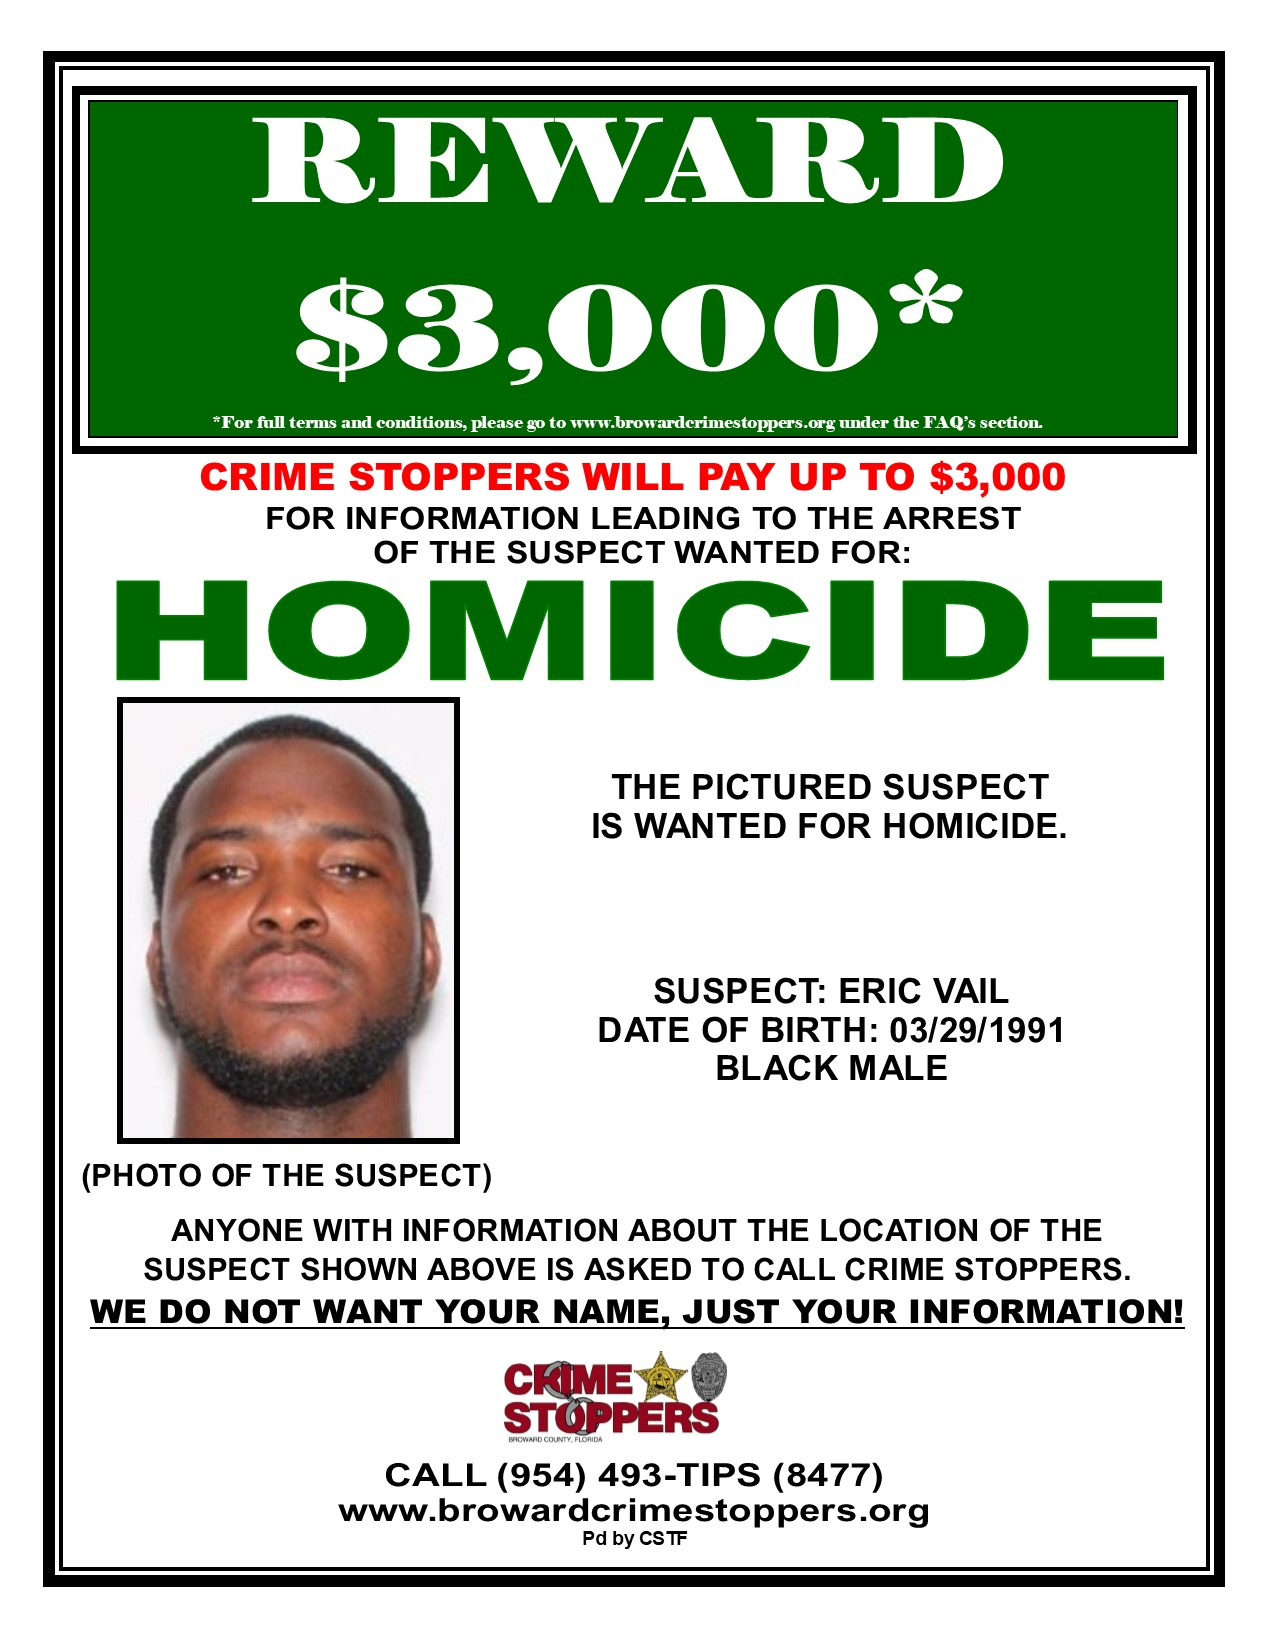 Submitting Tips on Crimes Pays | Broward Crime Stoppers